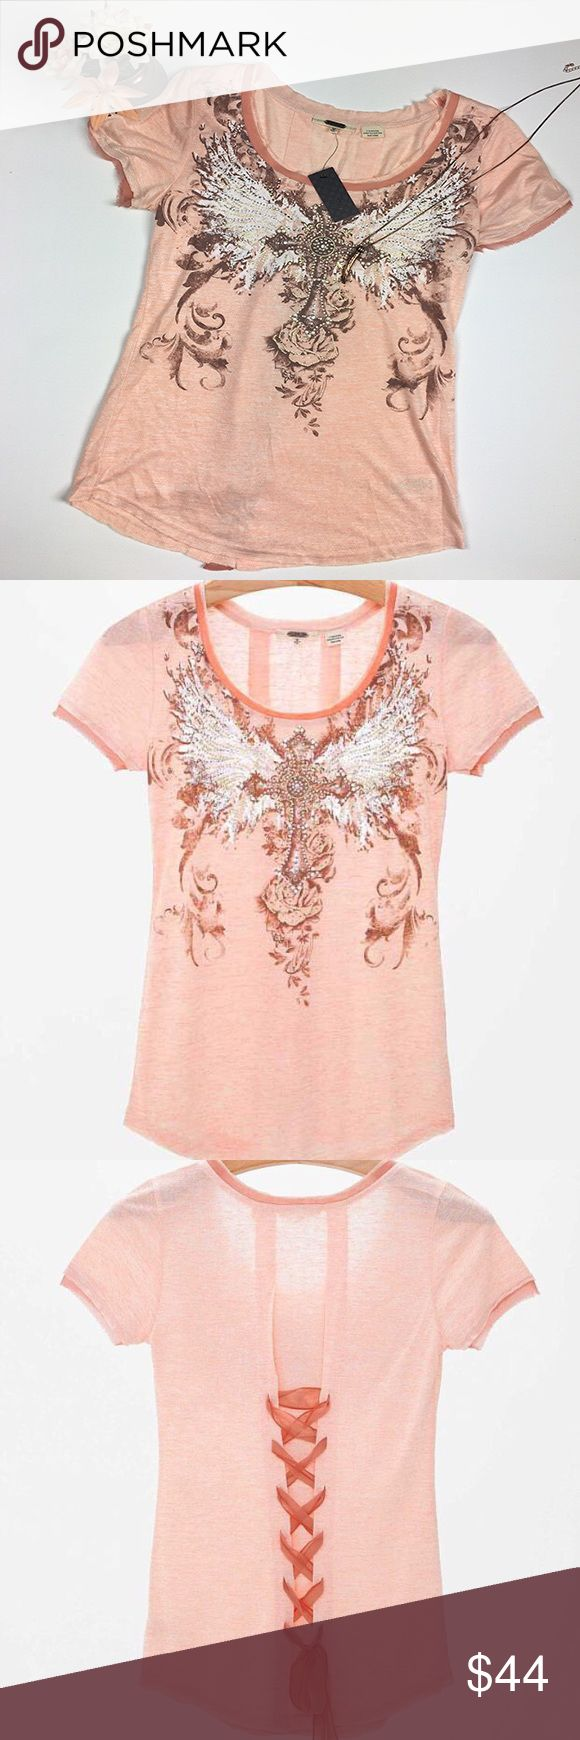 """NWT MISS ME Winged Cross Top This Miss Me top is short sleeve with a gorgeous, detailed, winged cross design on the front, full of embellishments. The back features a crisscross tie, down the middle, with a bow at the bottom. Super cute!   Condition: Brand New with Tags Size: M Color: Peach  Chest: 17"""" Length: 25""""  Material: 71% Rayon 29% Polyester   I LOVE OFFERS! Sorry no trades. Bundle to Save. Miss Me Tops Blouses"""